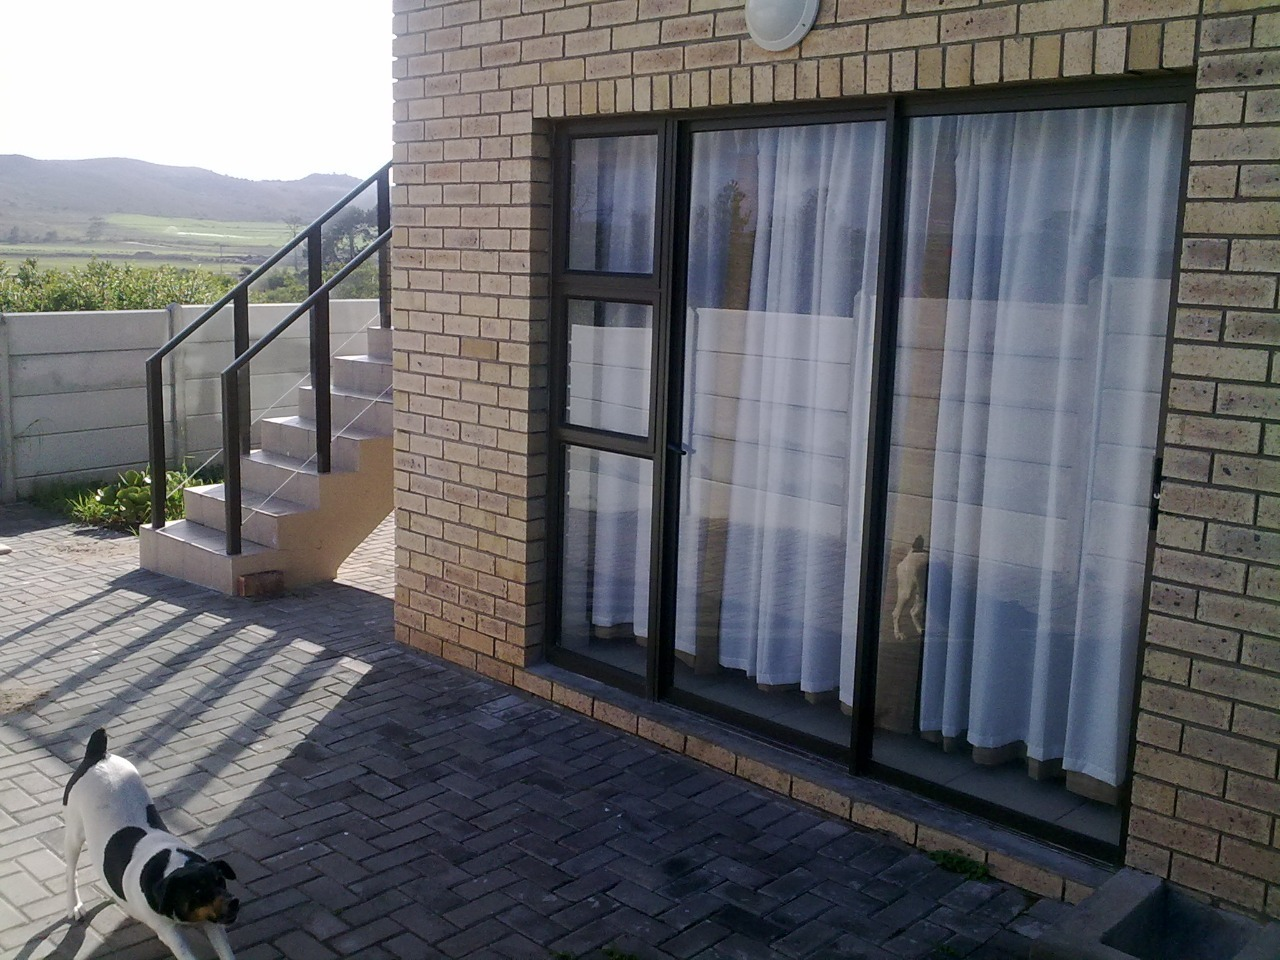 4 Bedroom House For Sale in Fraaiuitsig